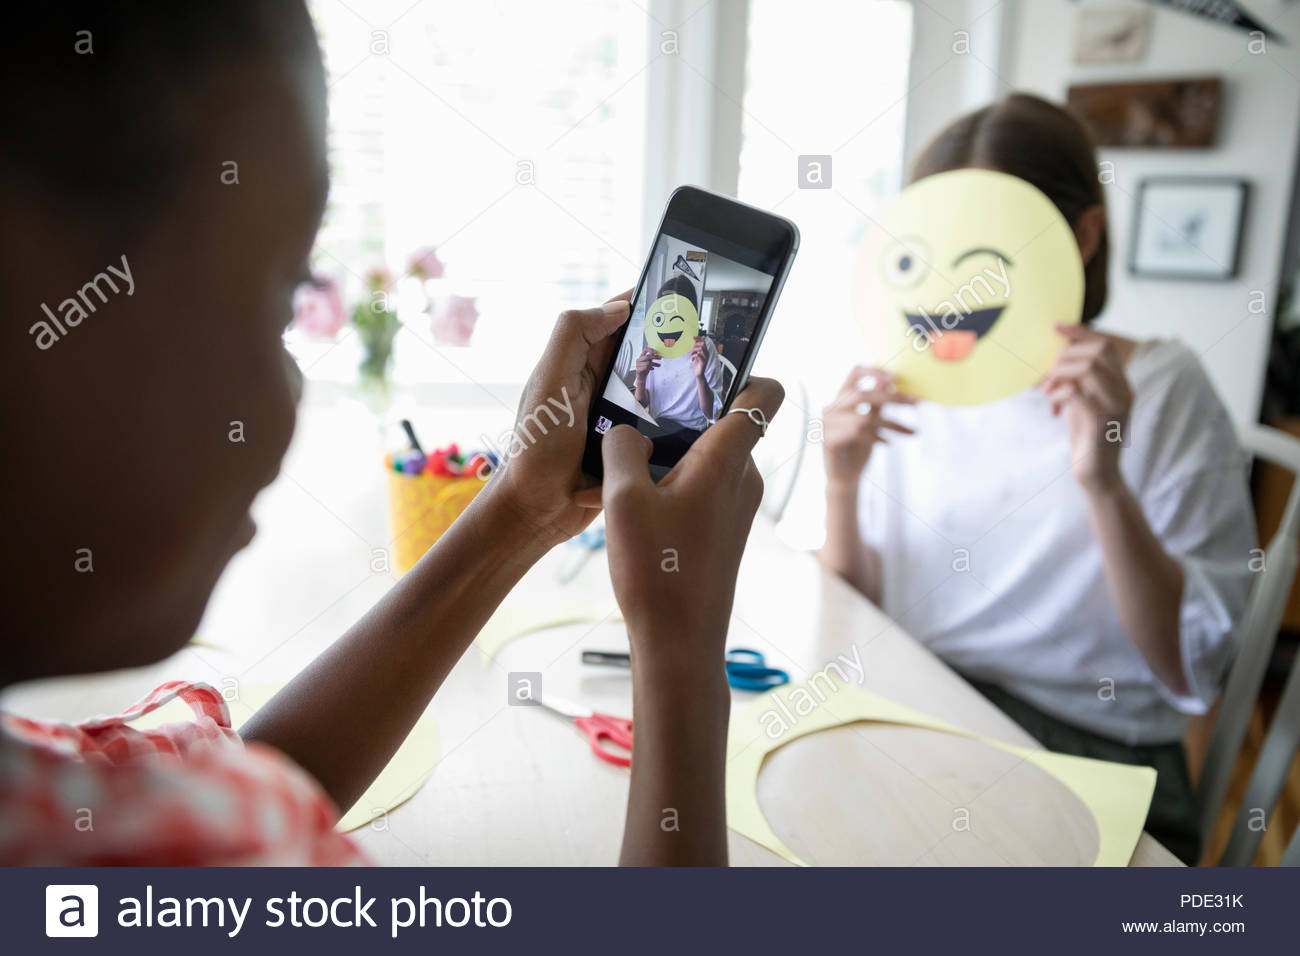 Tween girl with camera phone photographing friend holding winking emoji art project - Stock Image